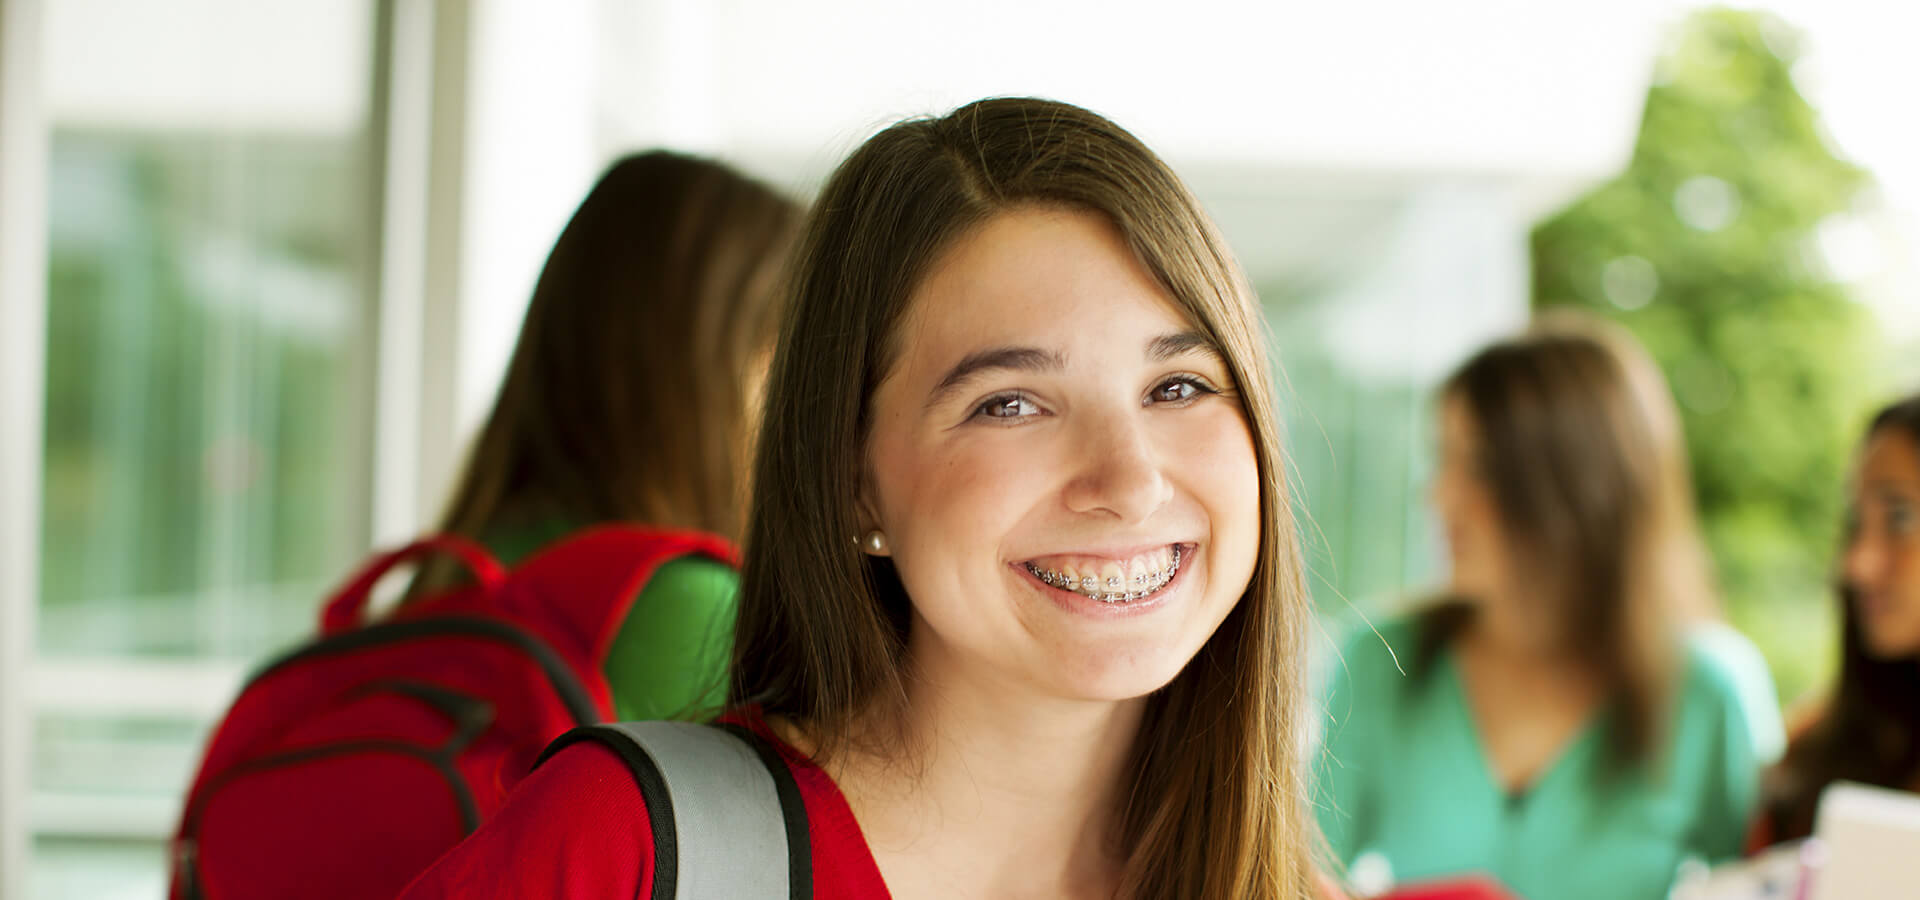 Smiling Brunette Teenage Girl in Braces